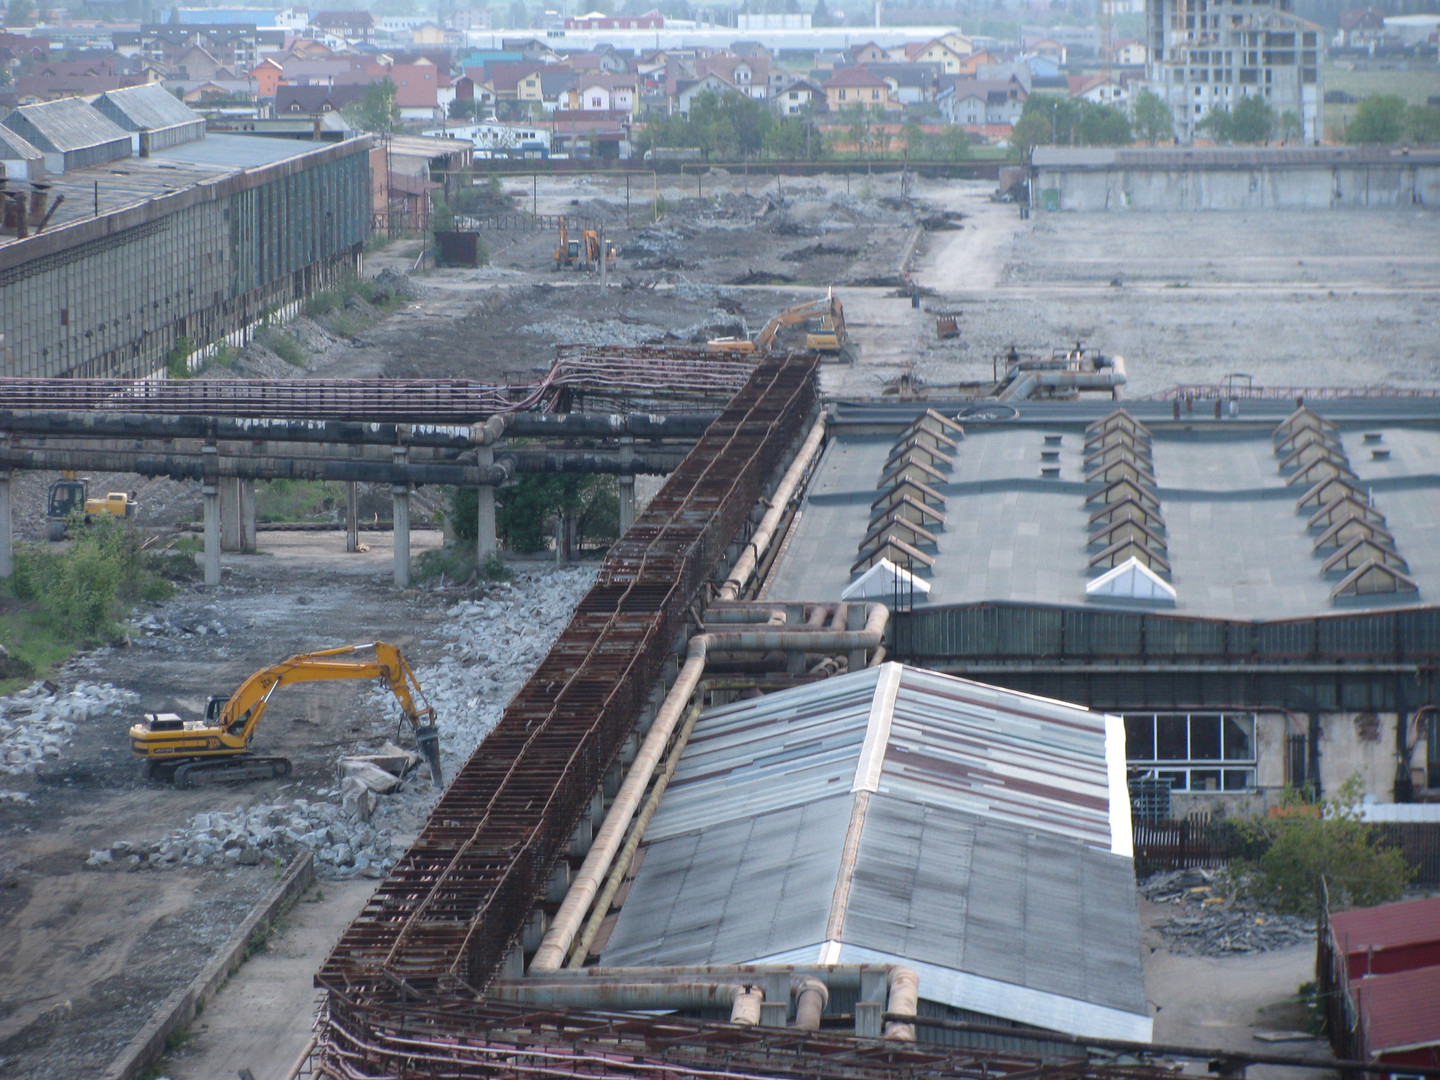 Demolition on a Mass Scale